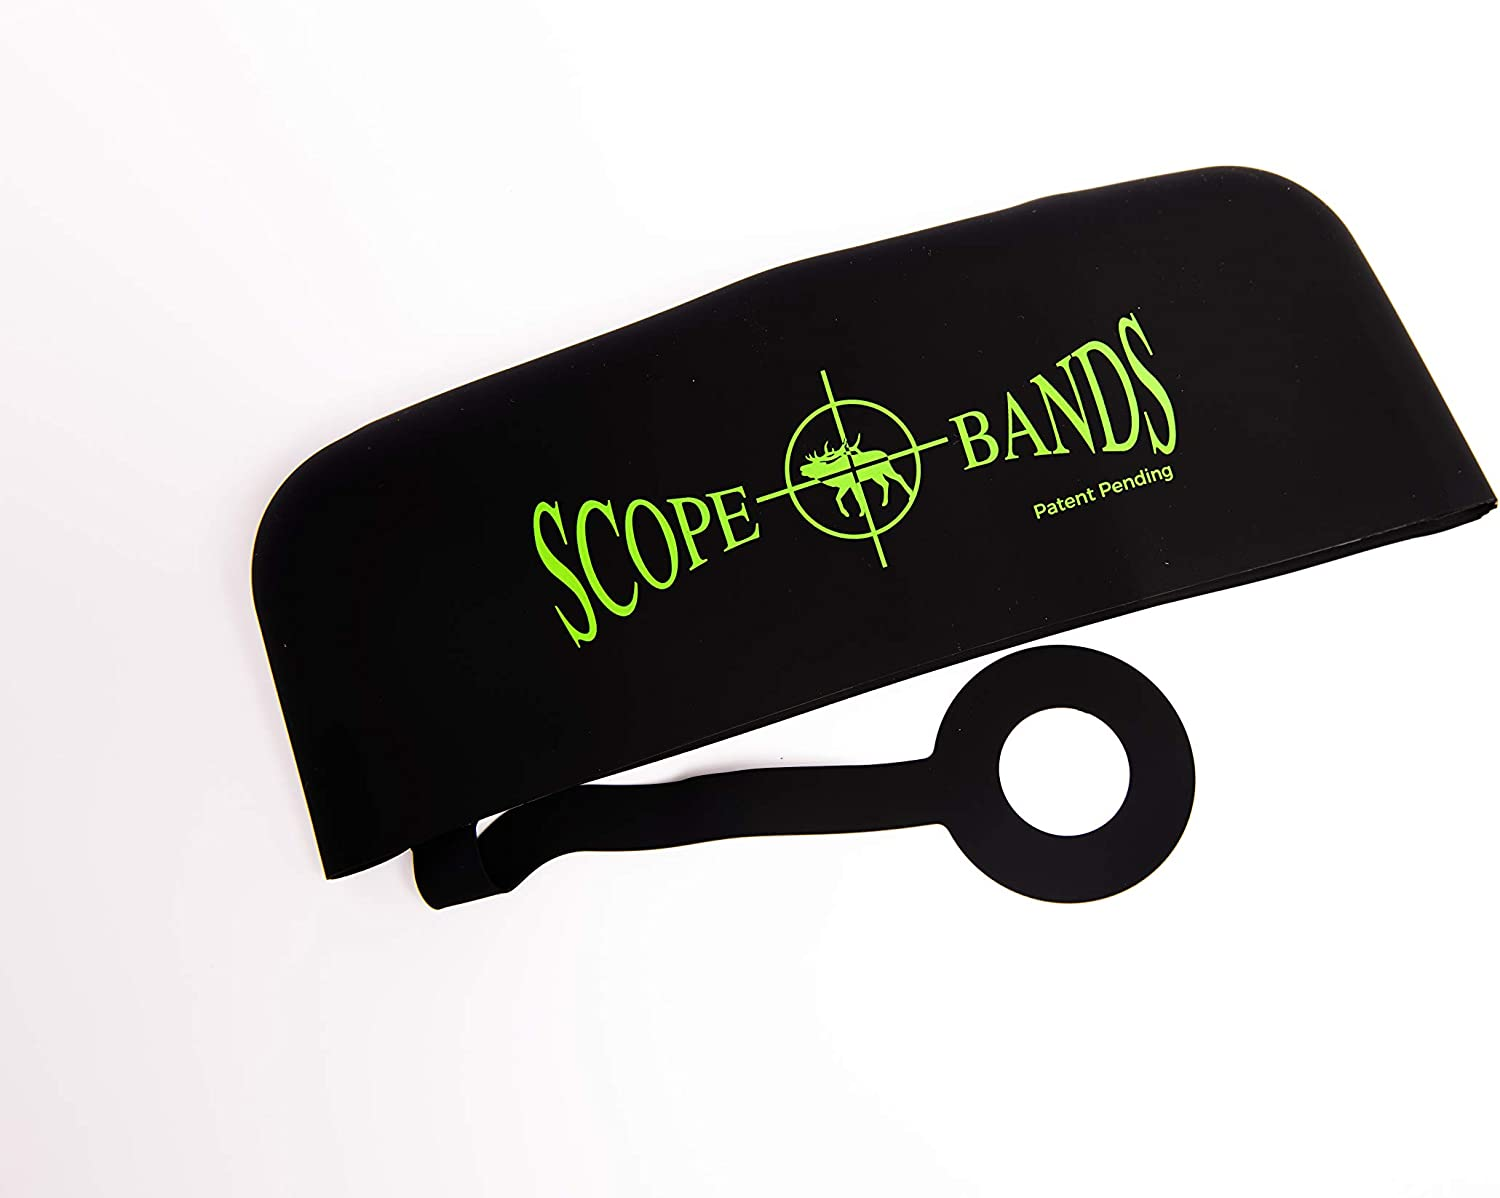 Sniper - Universal Closed-Top Spasm price Rifle Large-scale sale are Fit Stretch Scope Covers